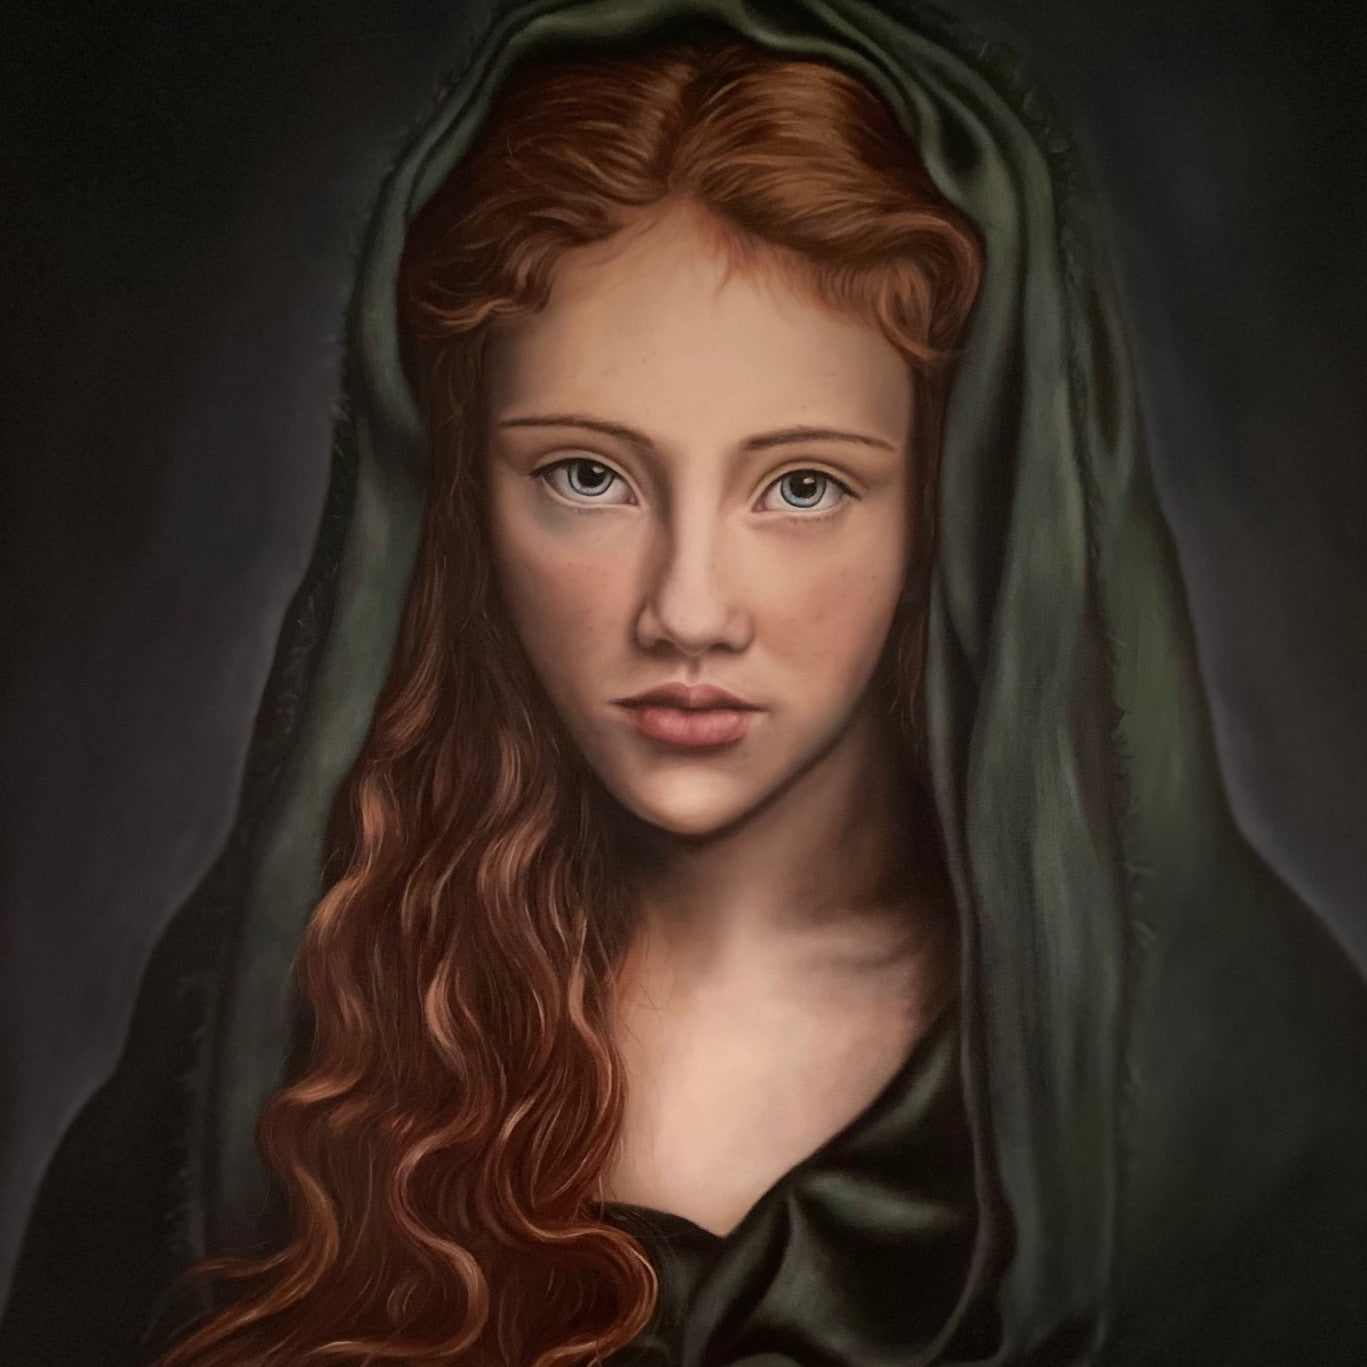 """Angelica"" by Renata Bosnjak 